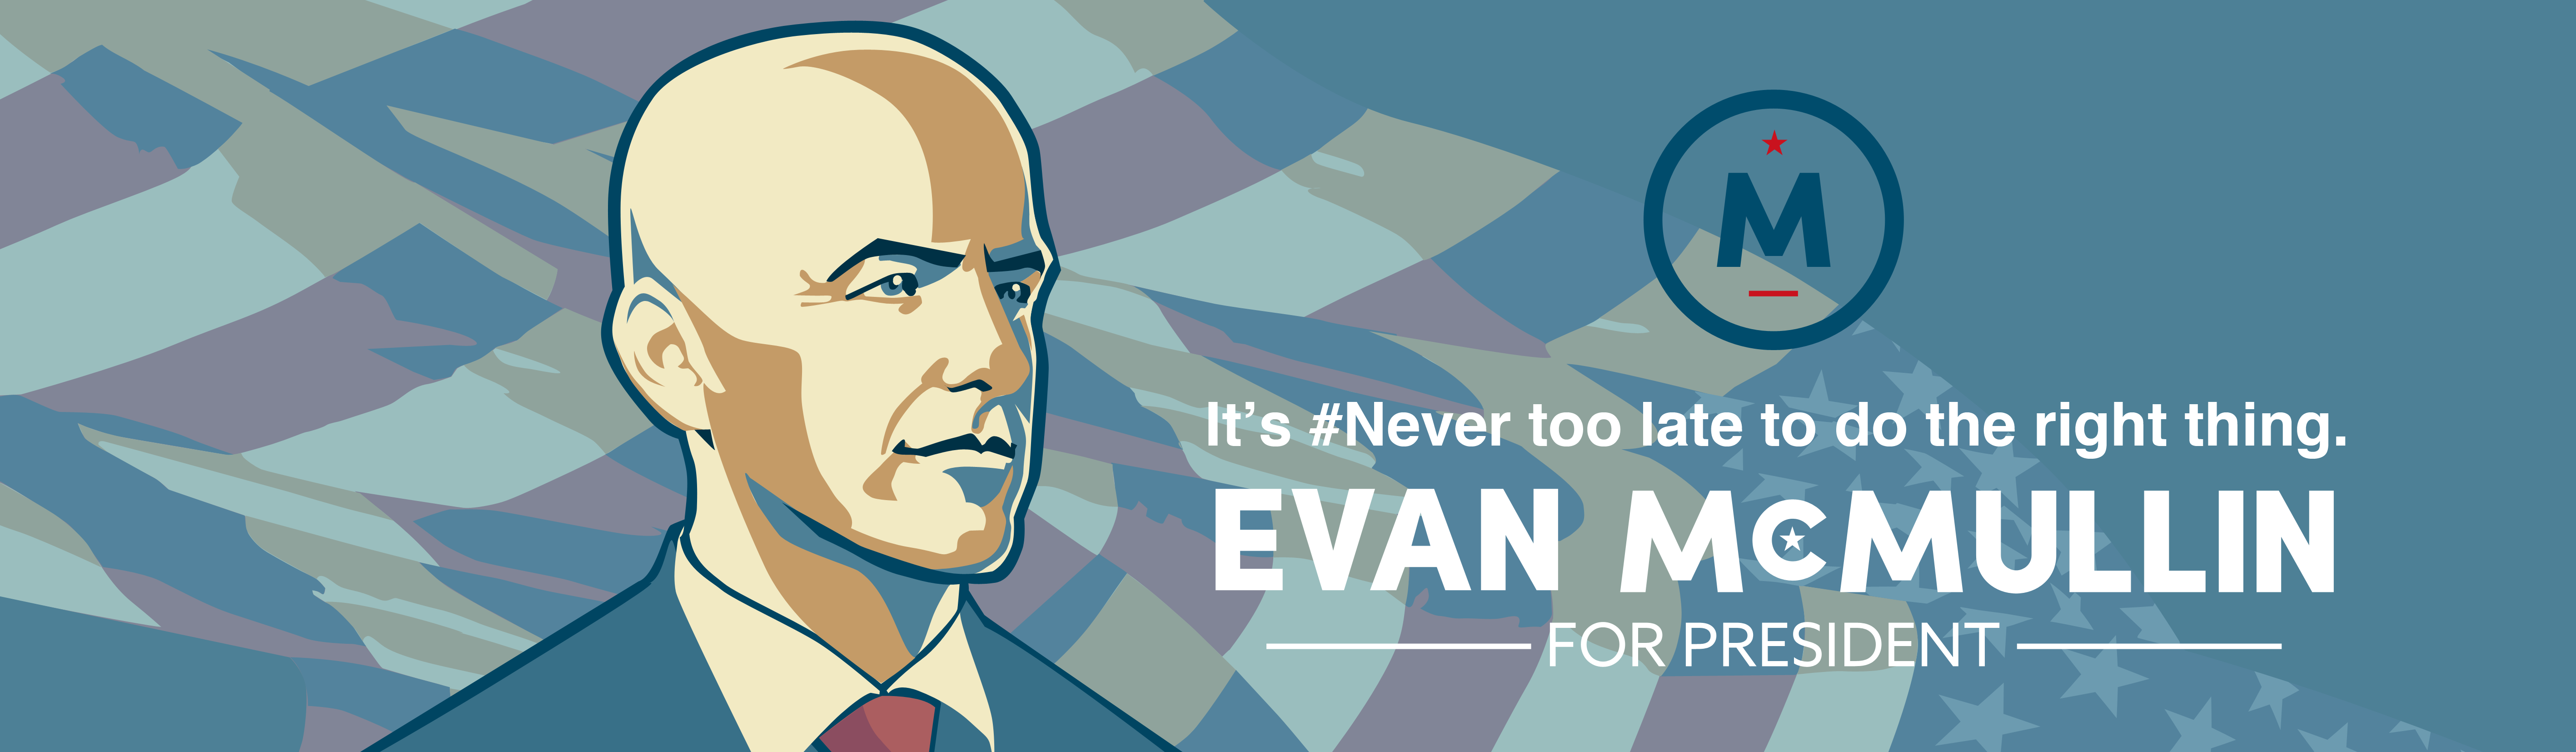 Evan McMullin Presidential Campaign